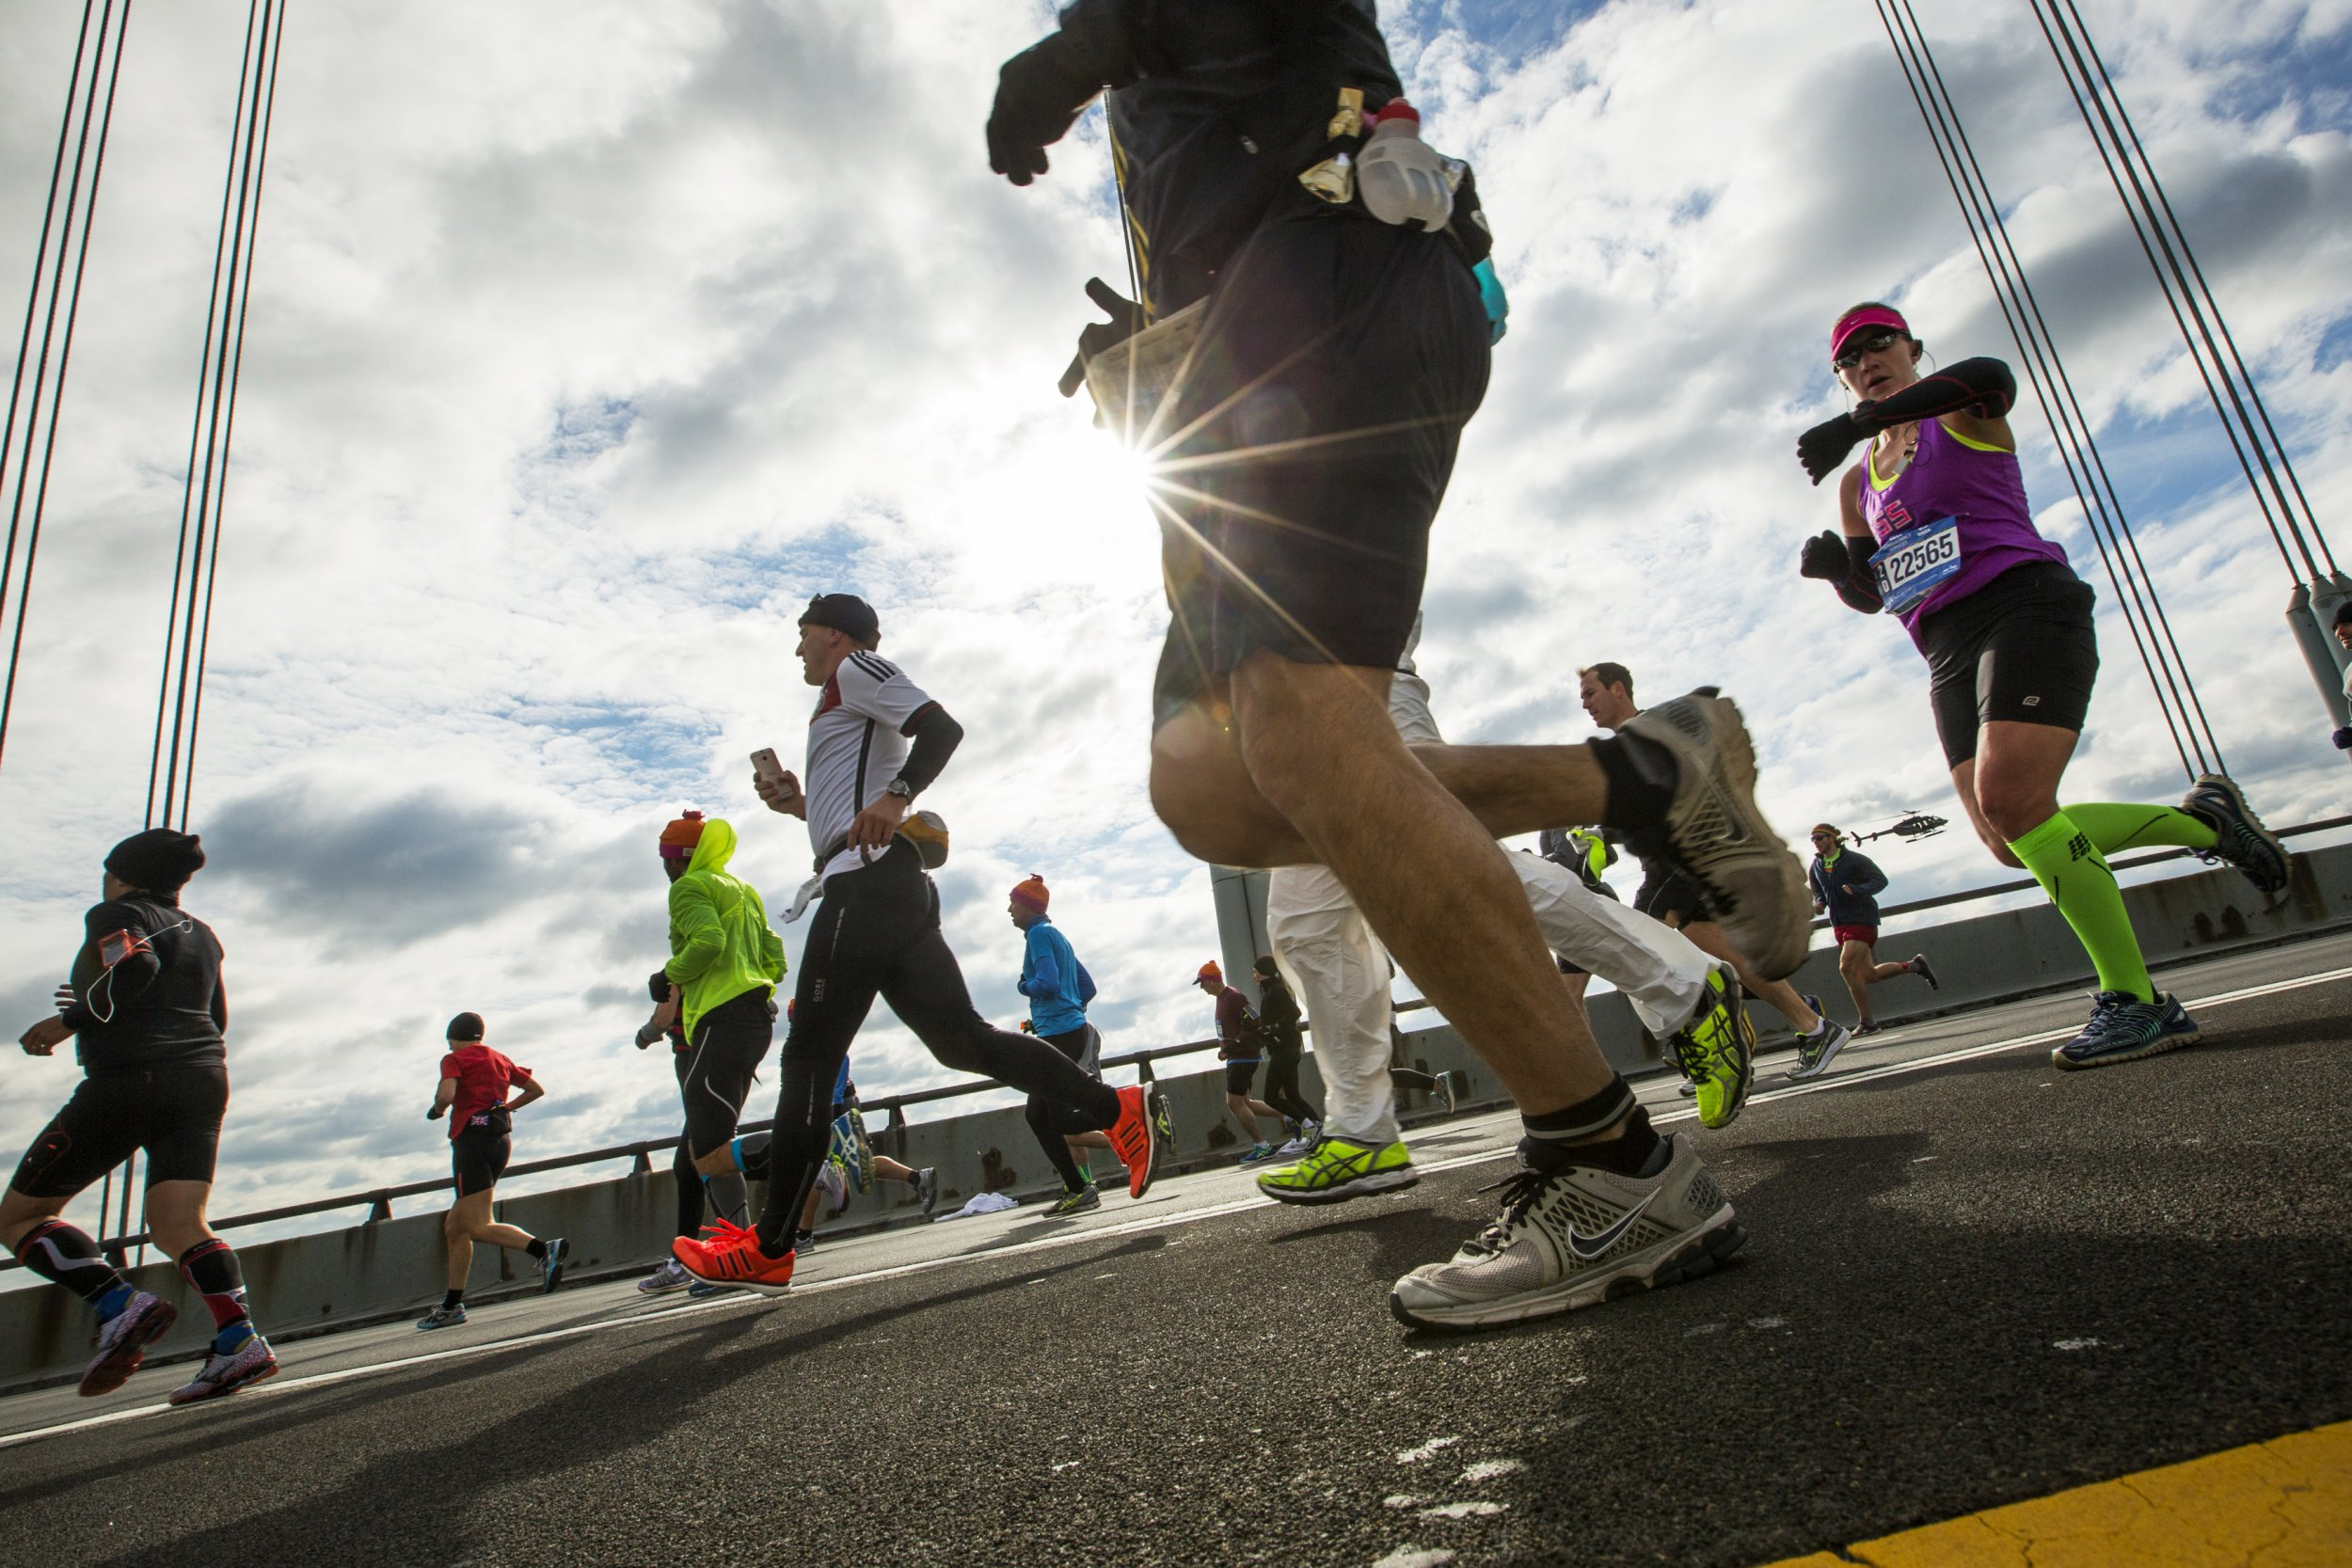 Runners take part in the New York City Marathon, November 2, 2014